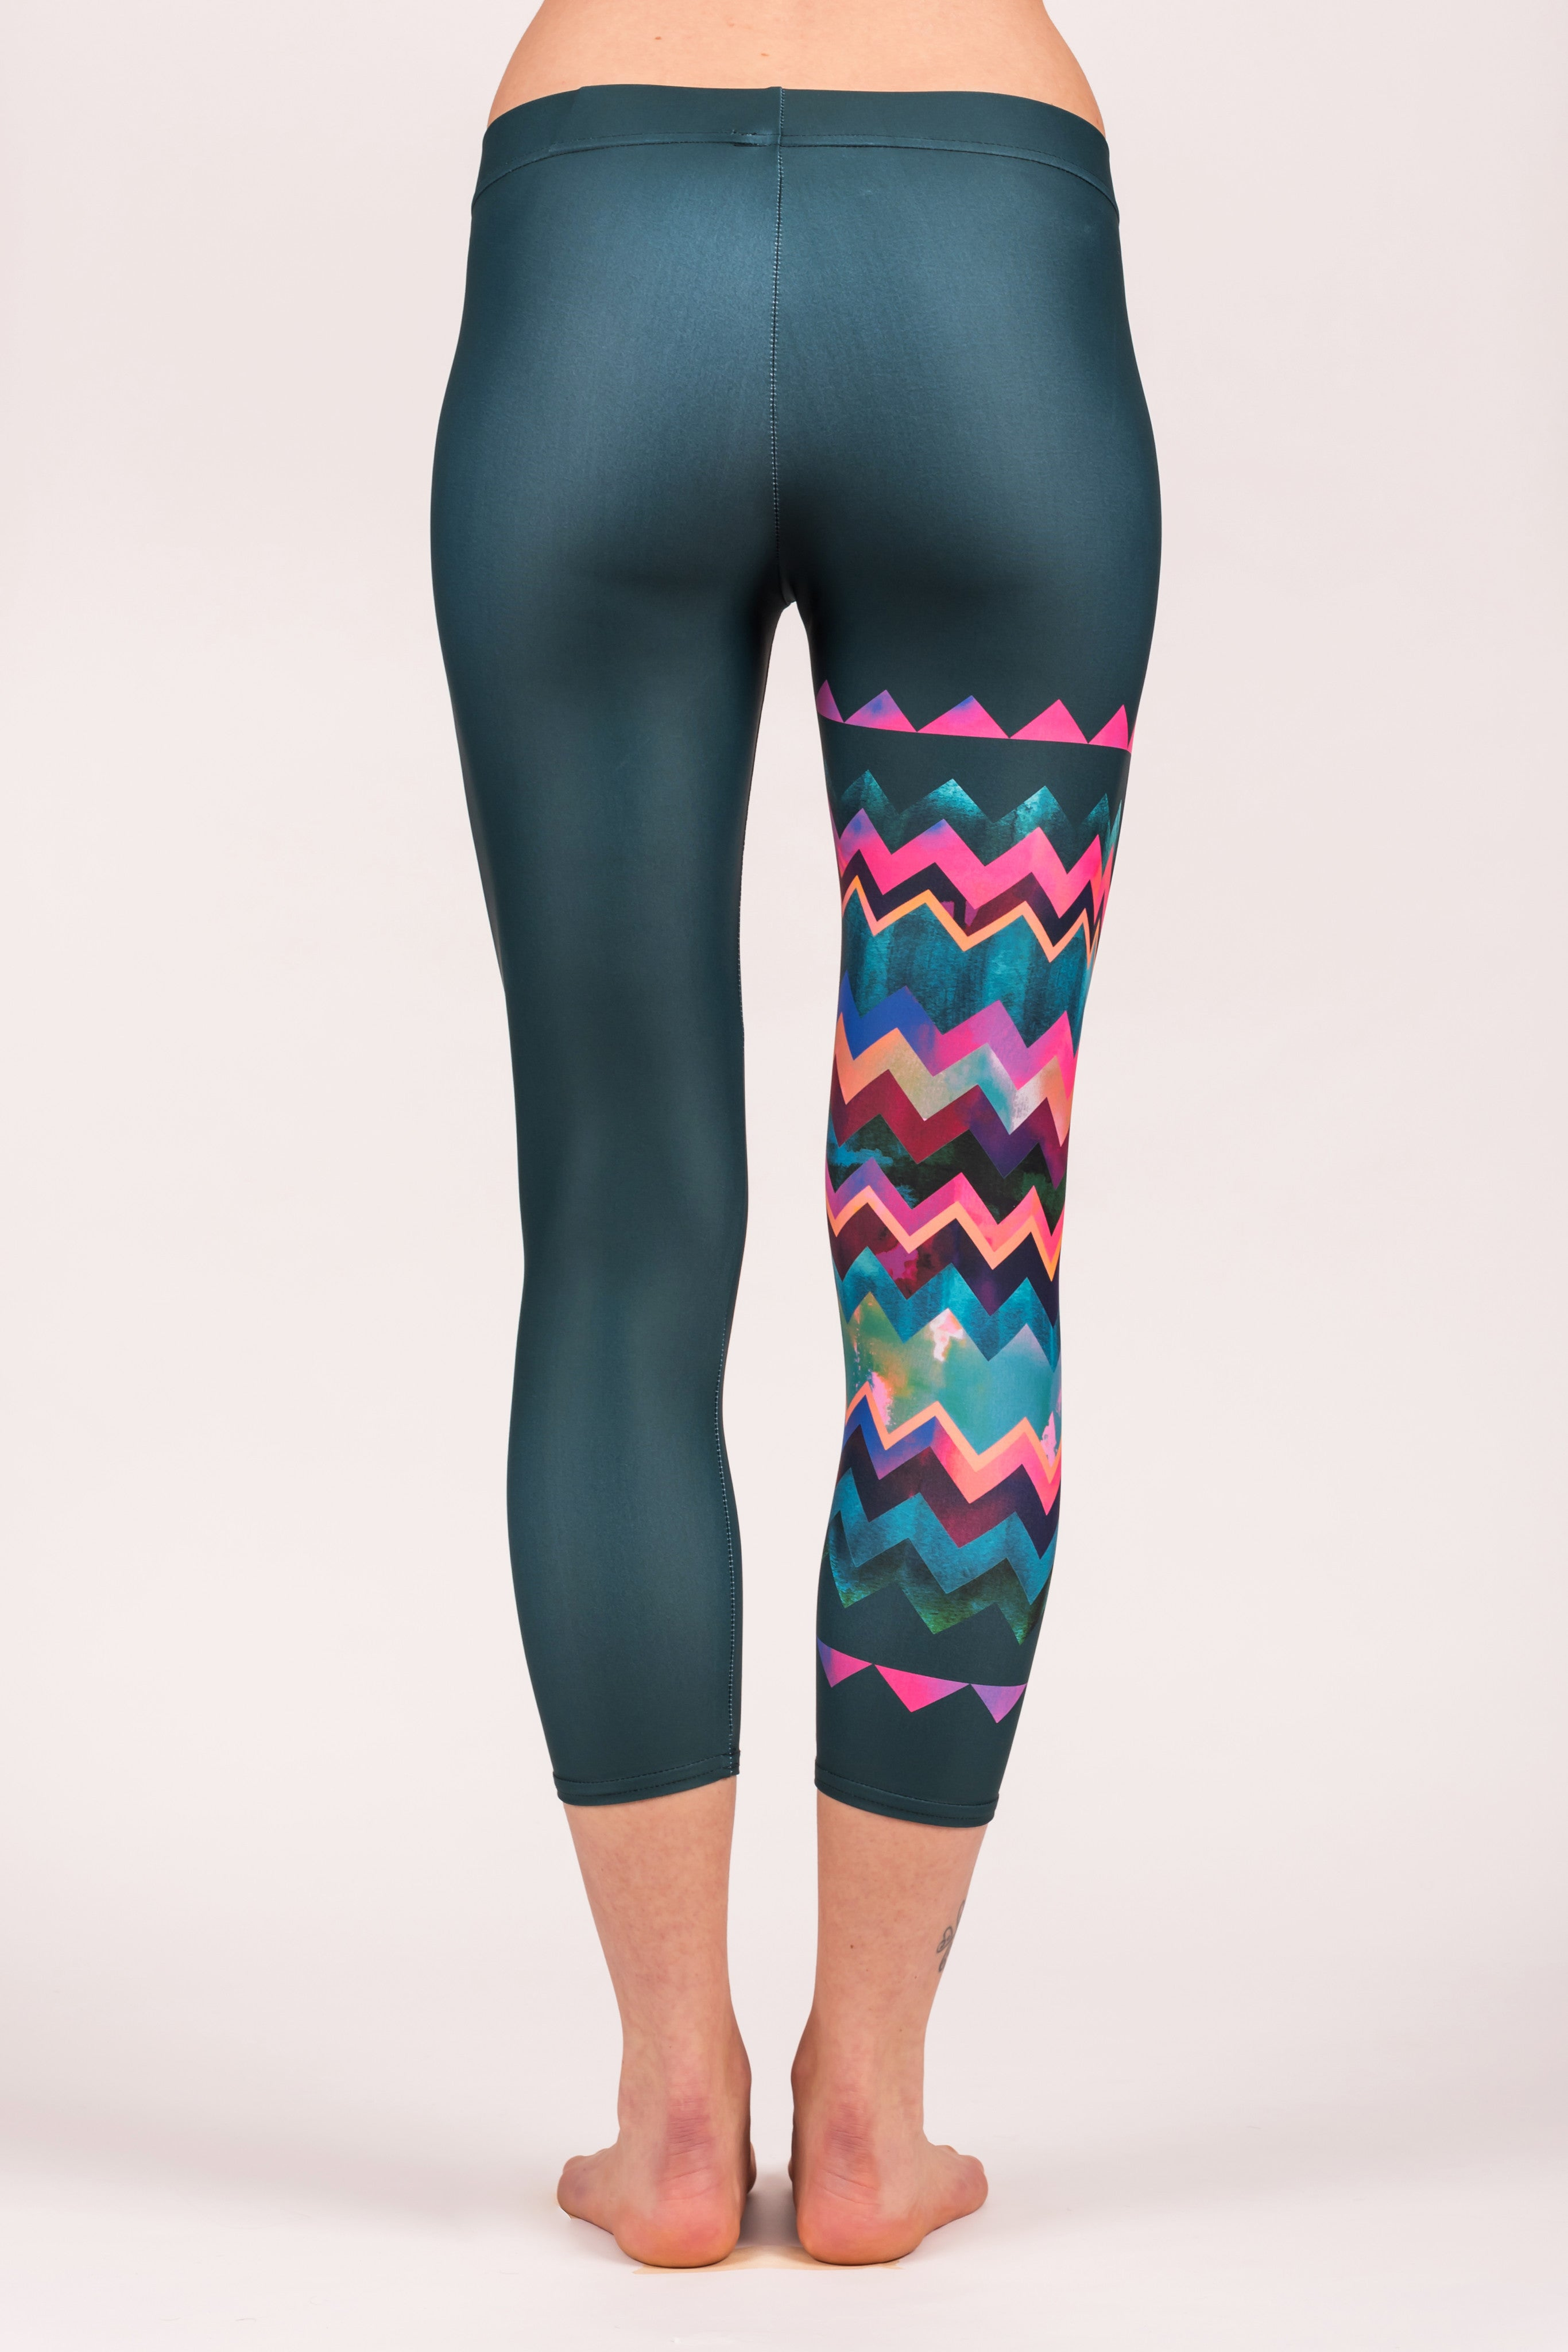 Lido West Chevron Capris Legging